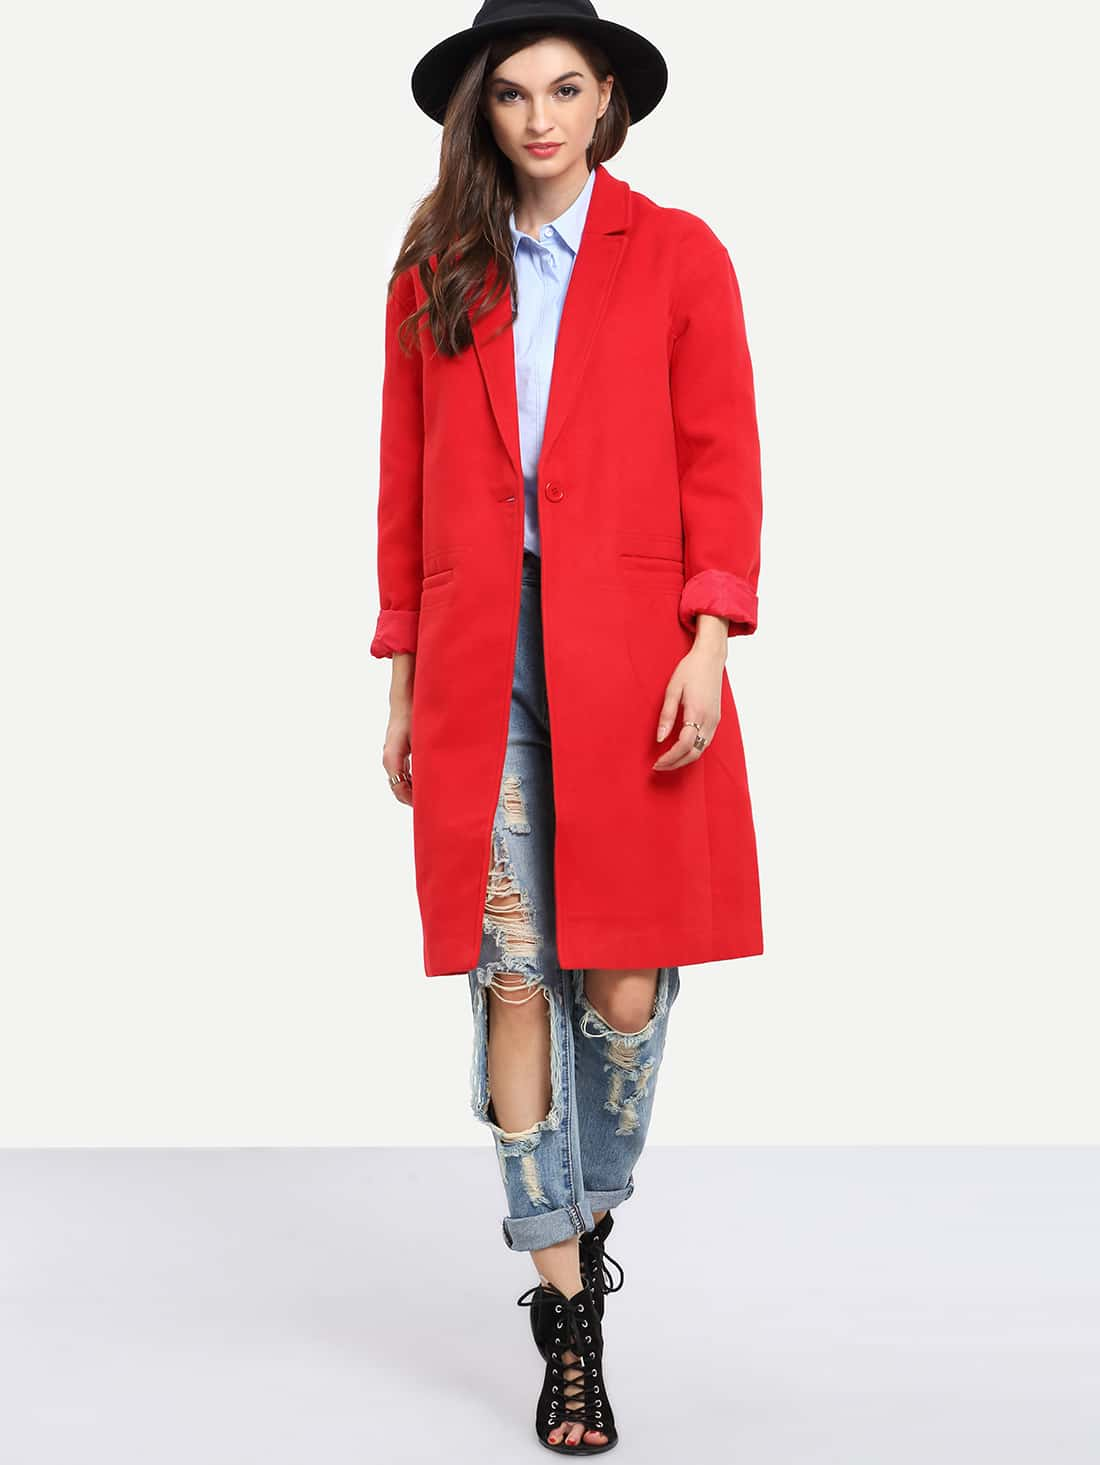 Red Long Sleeve Lapel Coat - $16.31